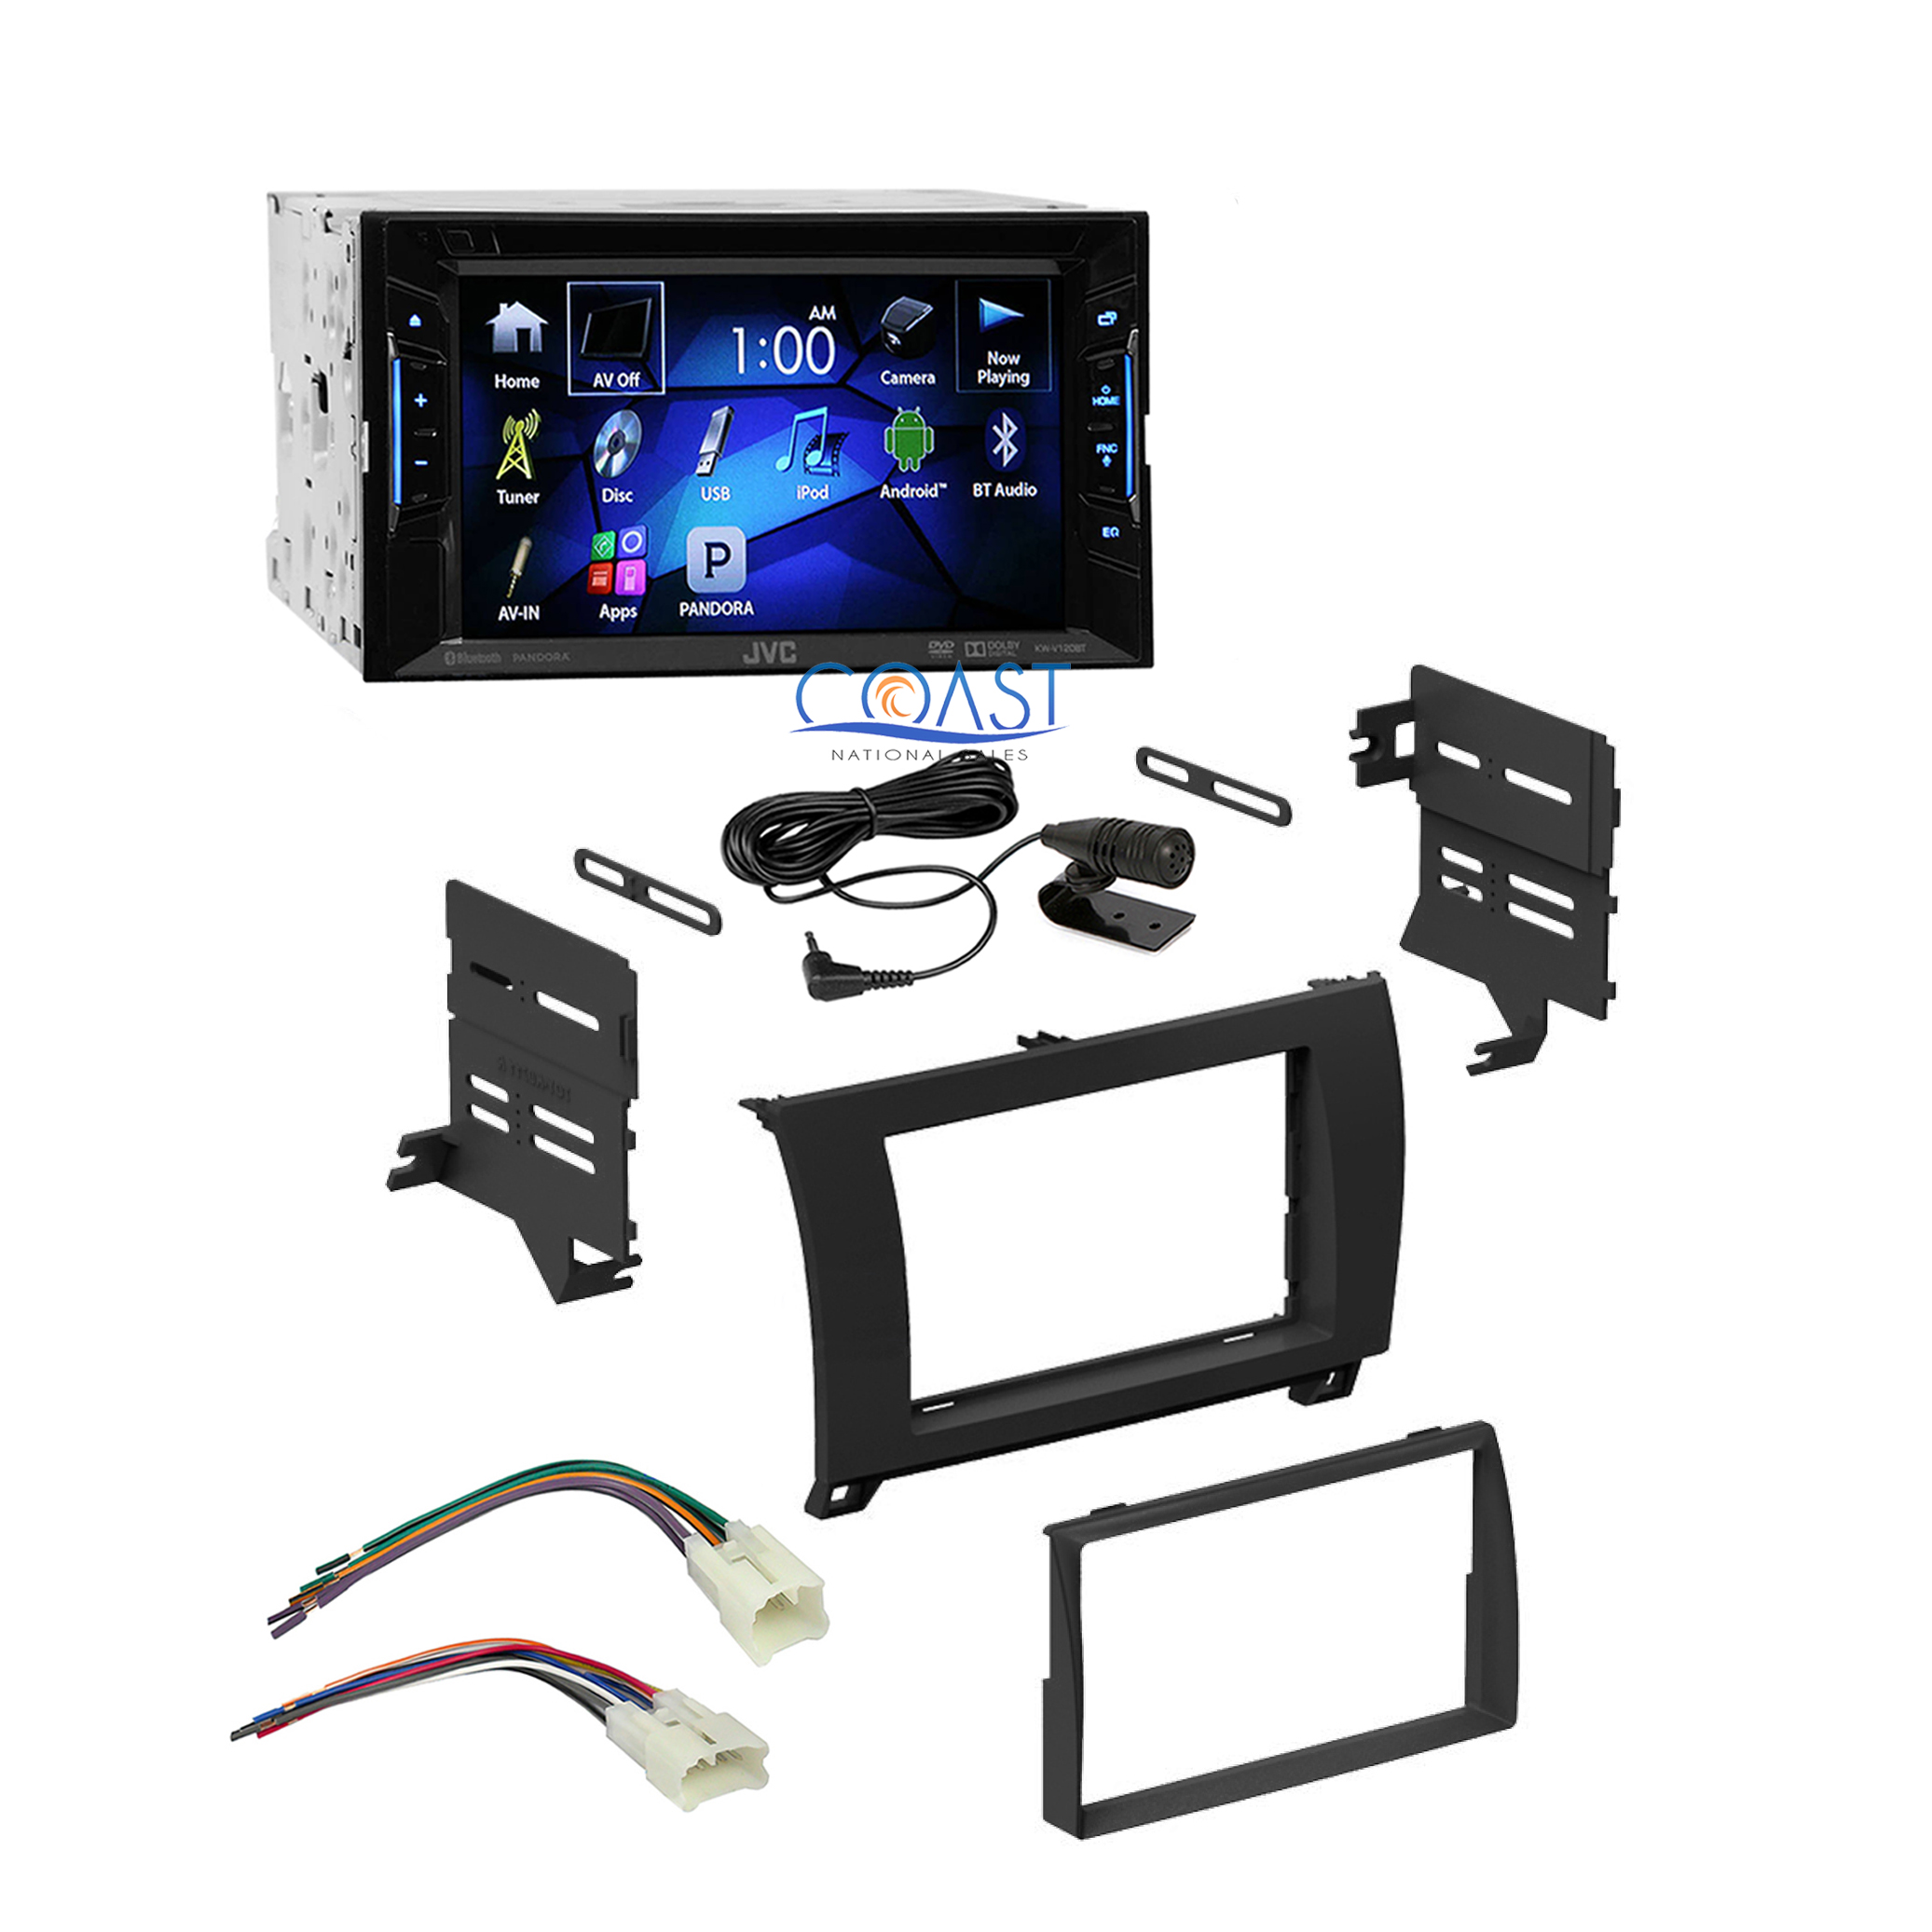 car stereo jvc kd g140 wiring diagram model with Car Stereo Jvc Kd R330 Wire Harness Diagram on Jvc Kd R730bt Wiring Harness additionally Jvc Kd S28 Wiring Diagram also Jvc Kd R210 Wiring Diagram furthermore Wiring Diagram Jvc Kd G110 besides Jvc Kd G210 Wiring Diagram.